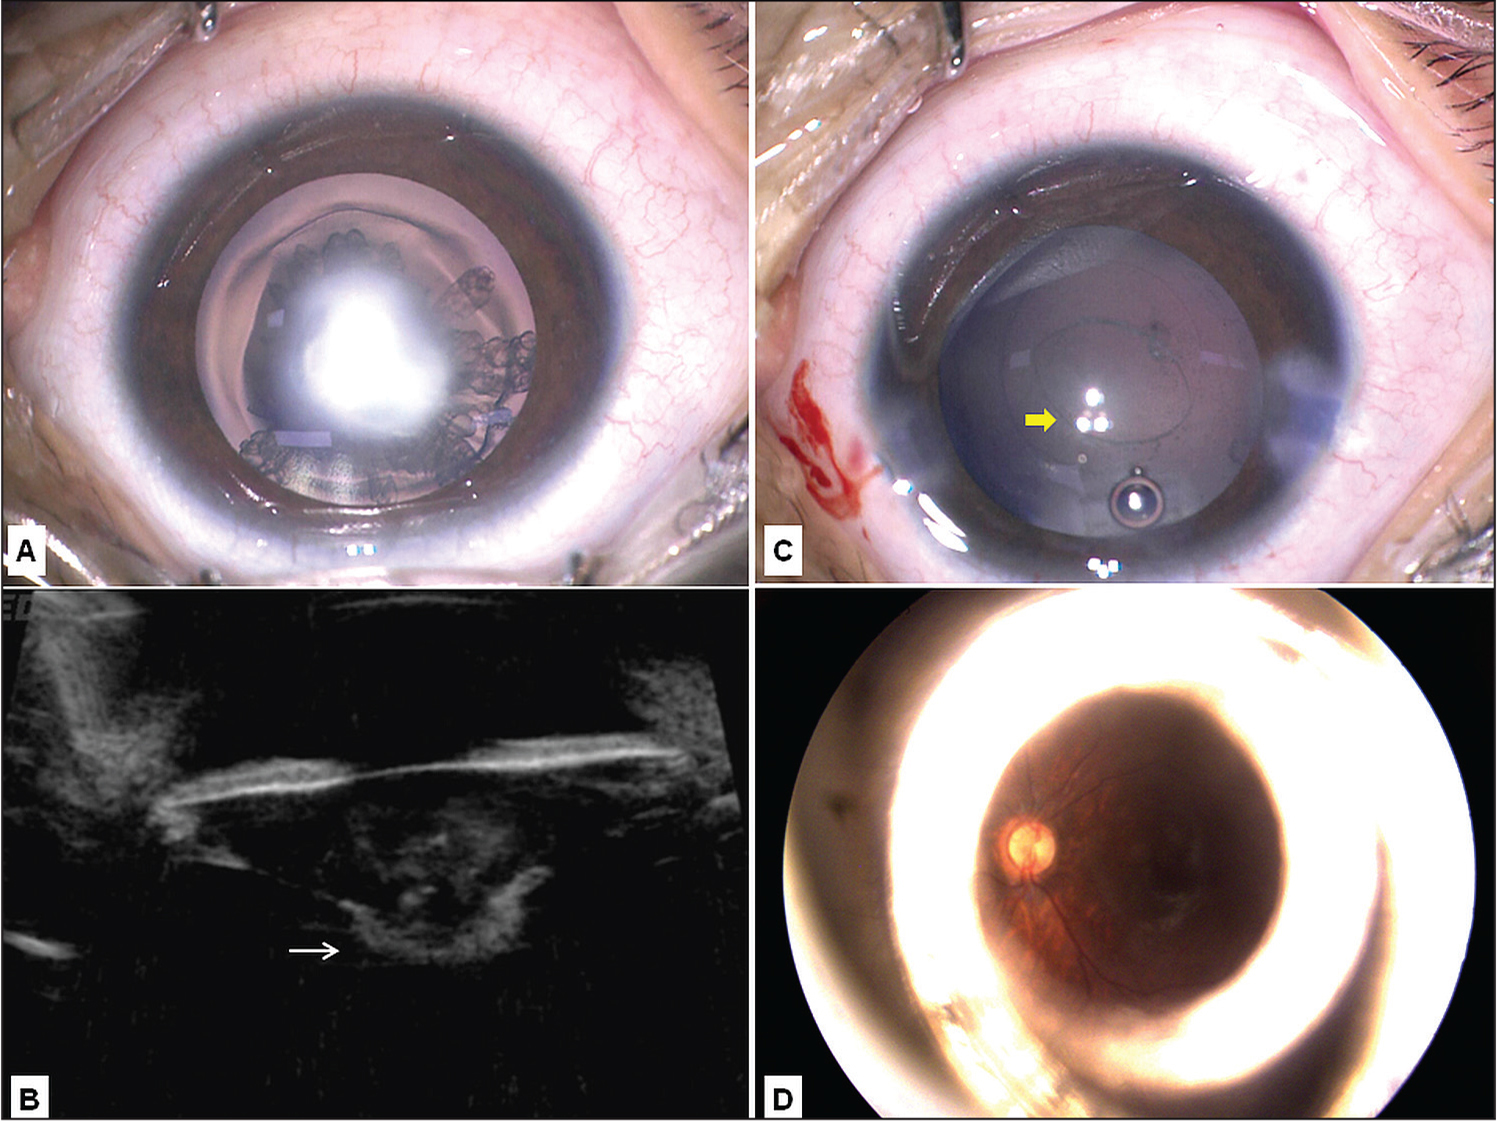 Imaging of case 2. (A) Intraoperative photograph of the left eye (surgeon's view) shows a dense central cataract with a fine lamellar component. (B) Ultrasound biomicroscopy shows a central posterior capsular defect (white arrow) with herniation of lens matter into the anterior vitreous. (C) Following bimanual aspiration, a central oval posterior capsular defect (yellow arrow) can be seen. (D) RetCam (Clarity Medical Systems, Inc., Pleasanton, CA) image at final follow-up shows a clear visual axis, normal posterior pole, and bright reflex from the edge of the intraocular lens.